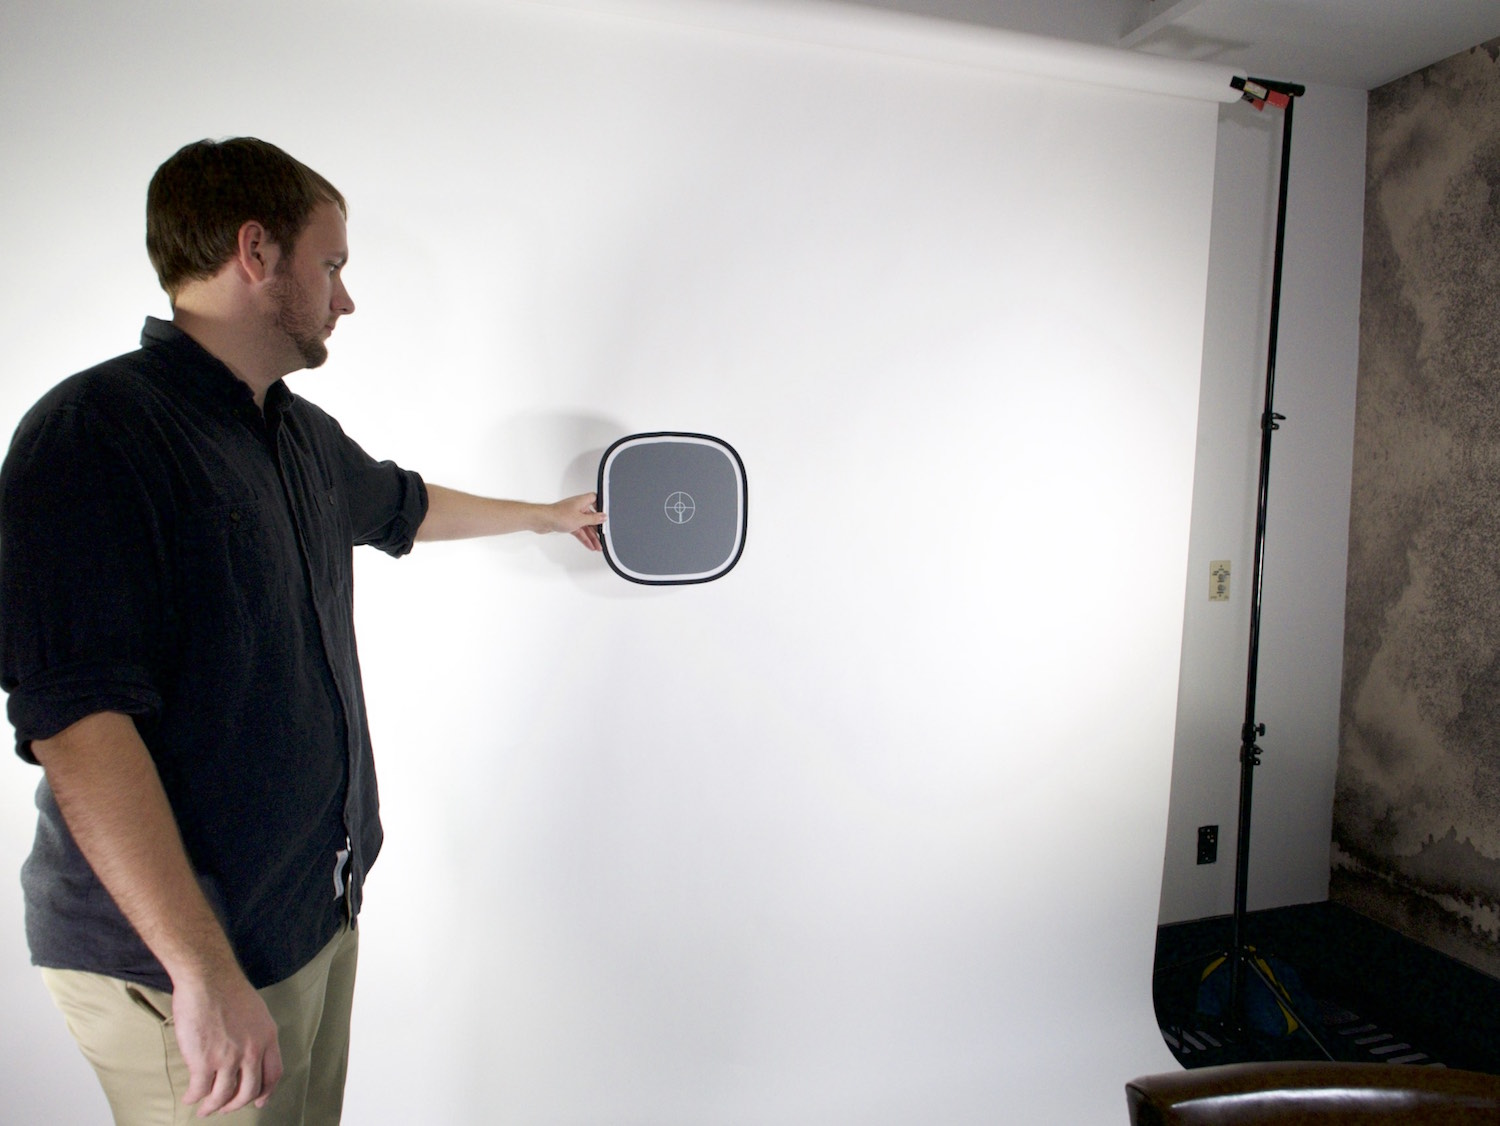 Behind the scenes interview getting exposure with grey card on a white seamless backdrop